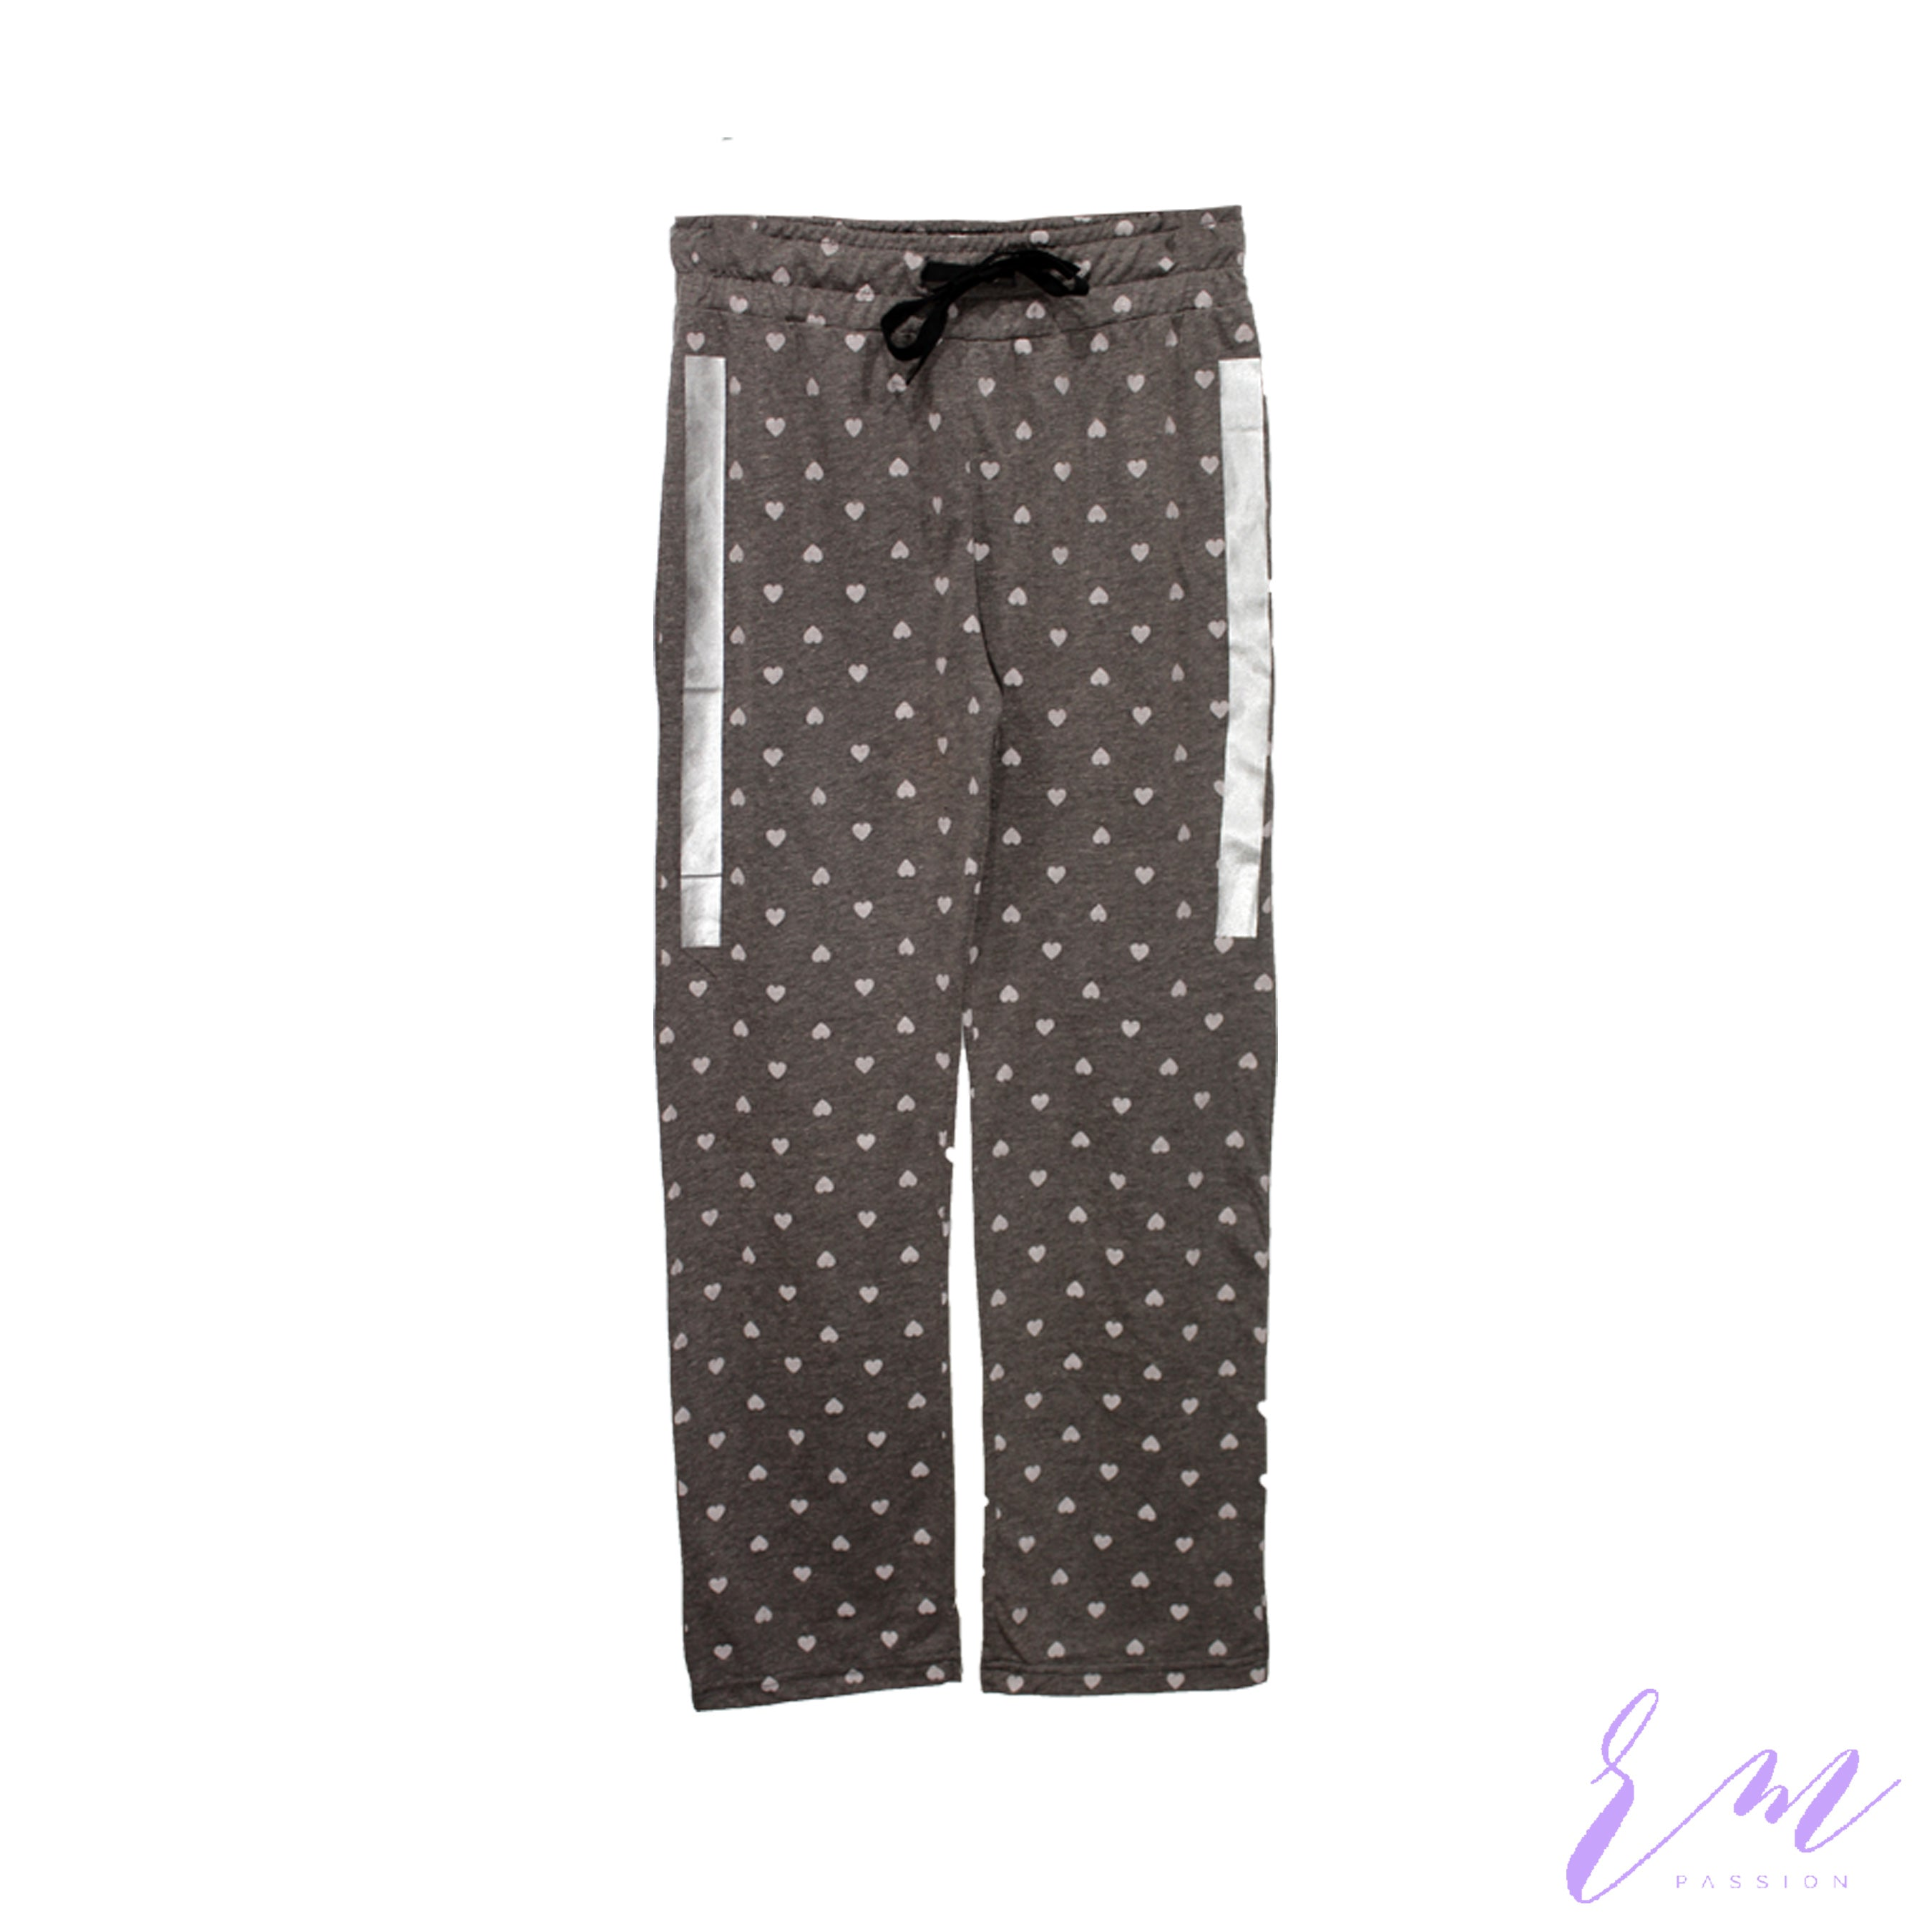 Heart printed trouser